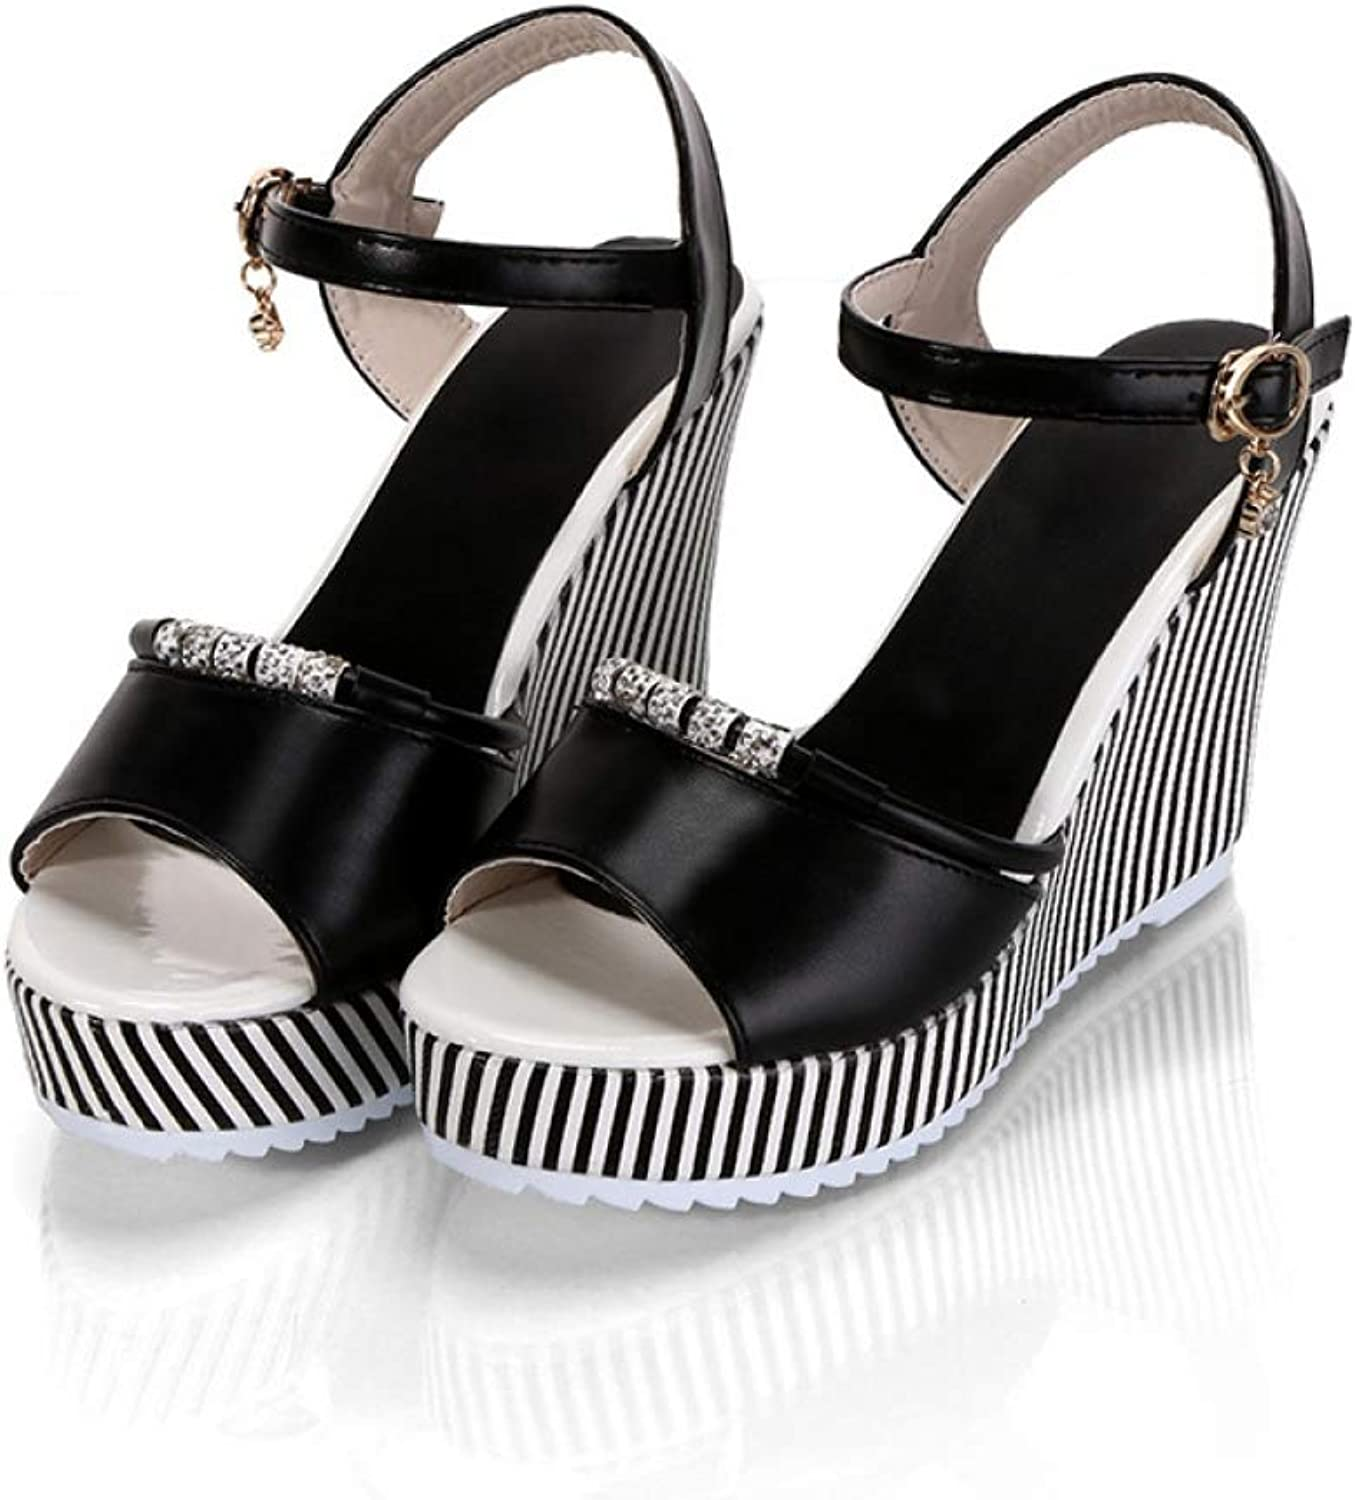 Women Platform Wedges Sandals Female Rhinestone Stripe Fish Mouth Waterproof High Heels Ladies shoes